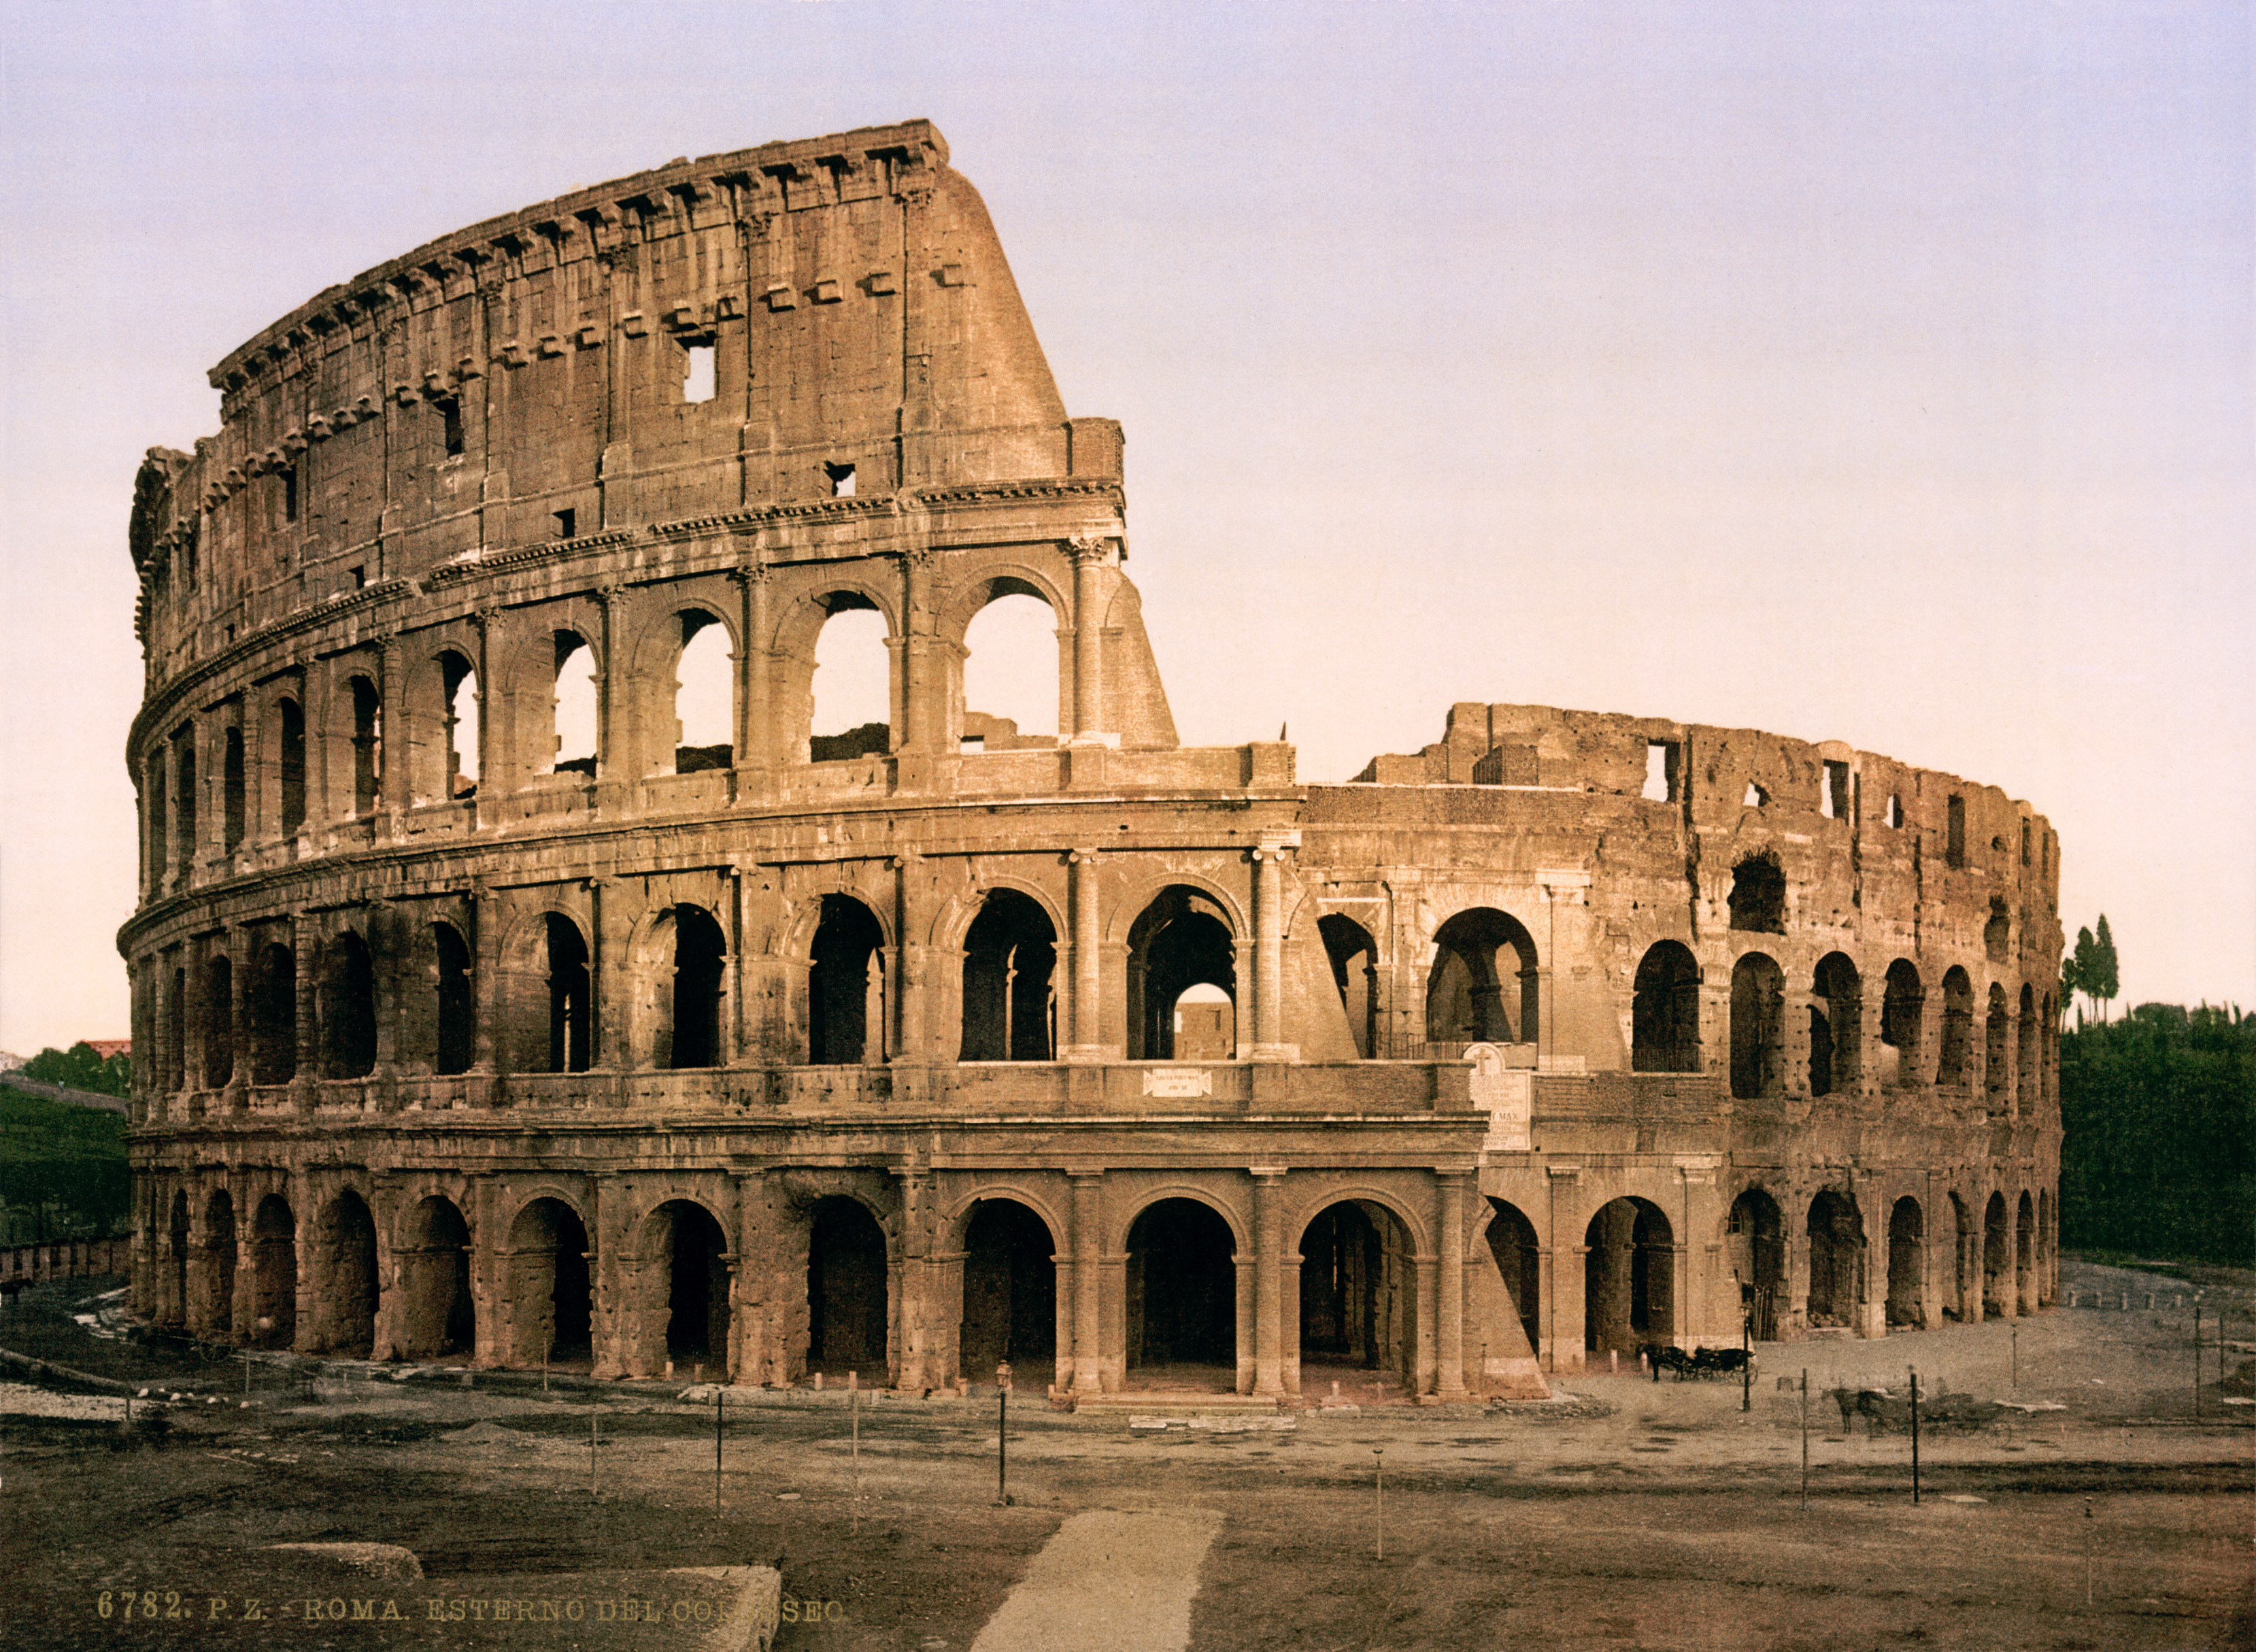 Flickr - …trialsanderrors - The Colosseum, Rome, Italy, ca. 1896.jpg